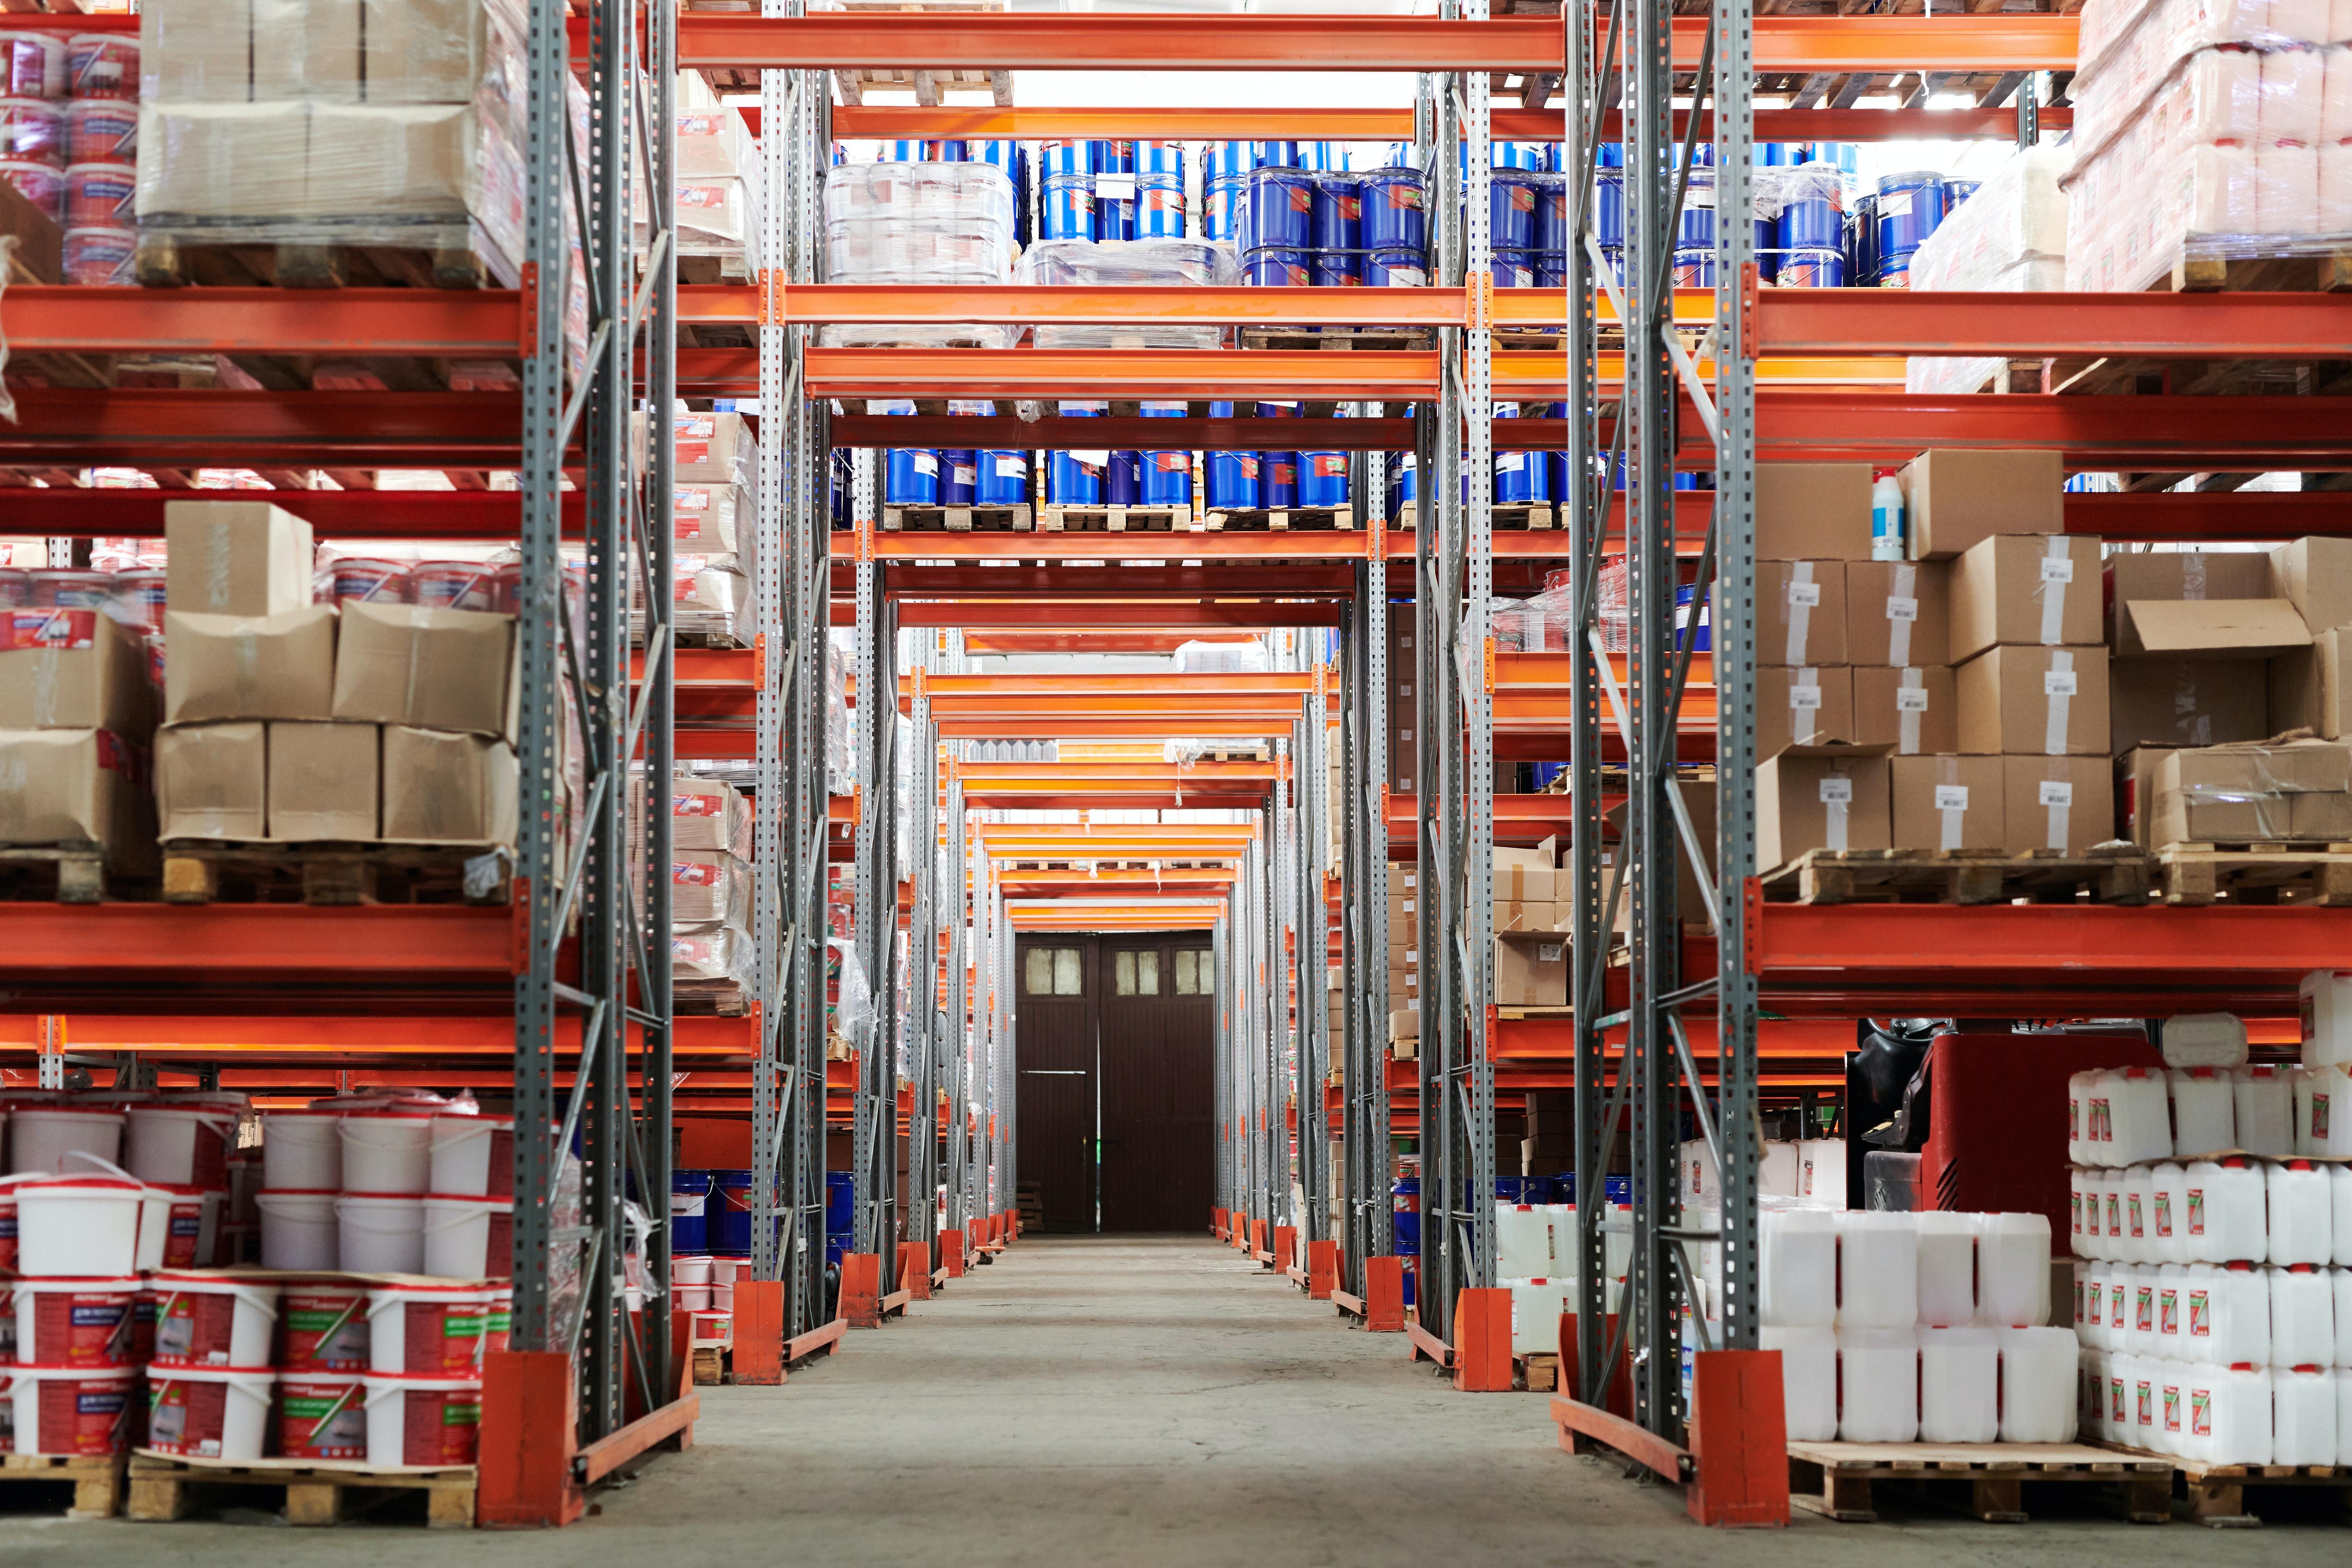 The Easiest Way to Manage Inventory for Small Businesses